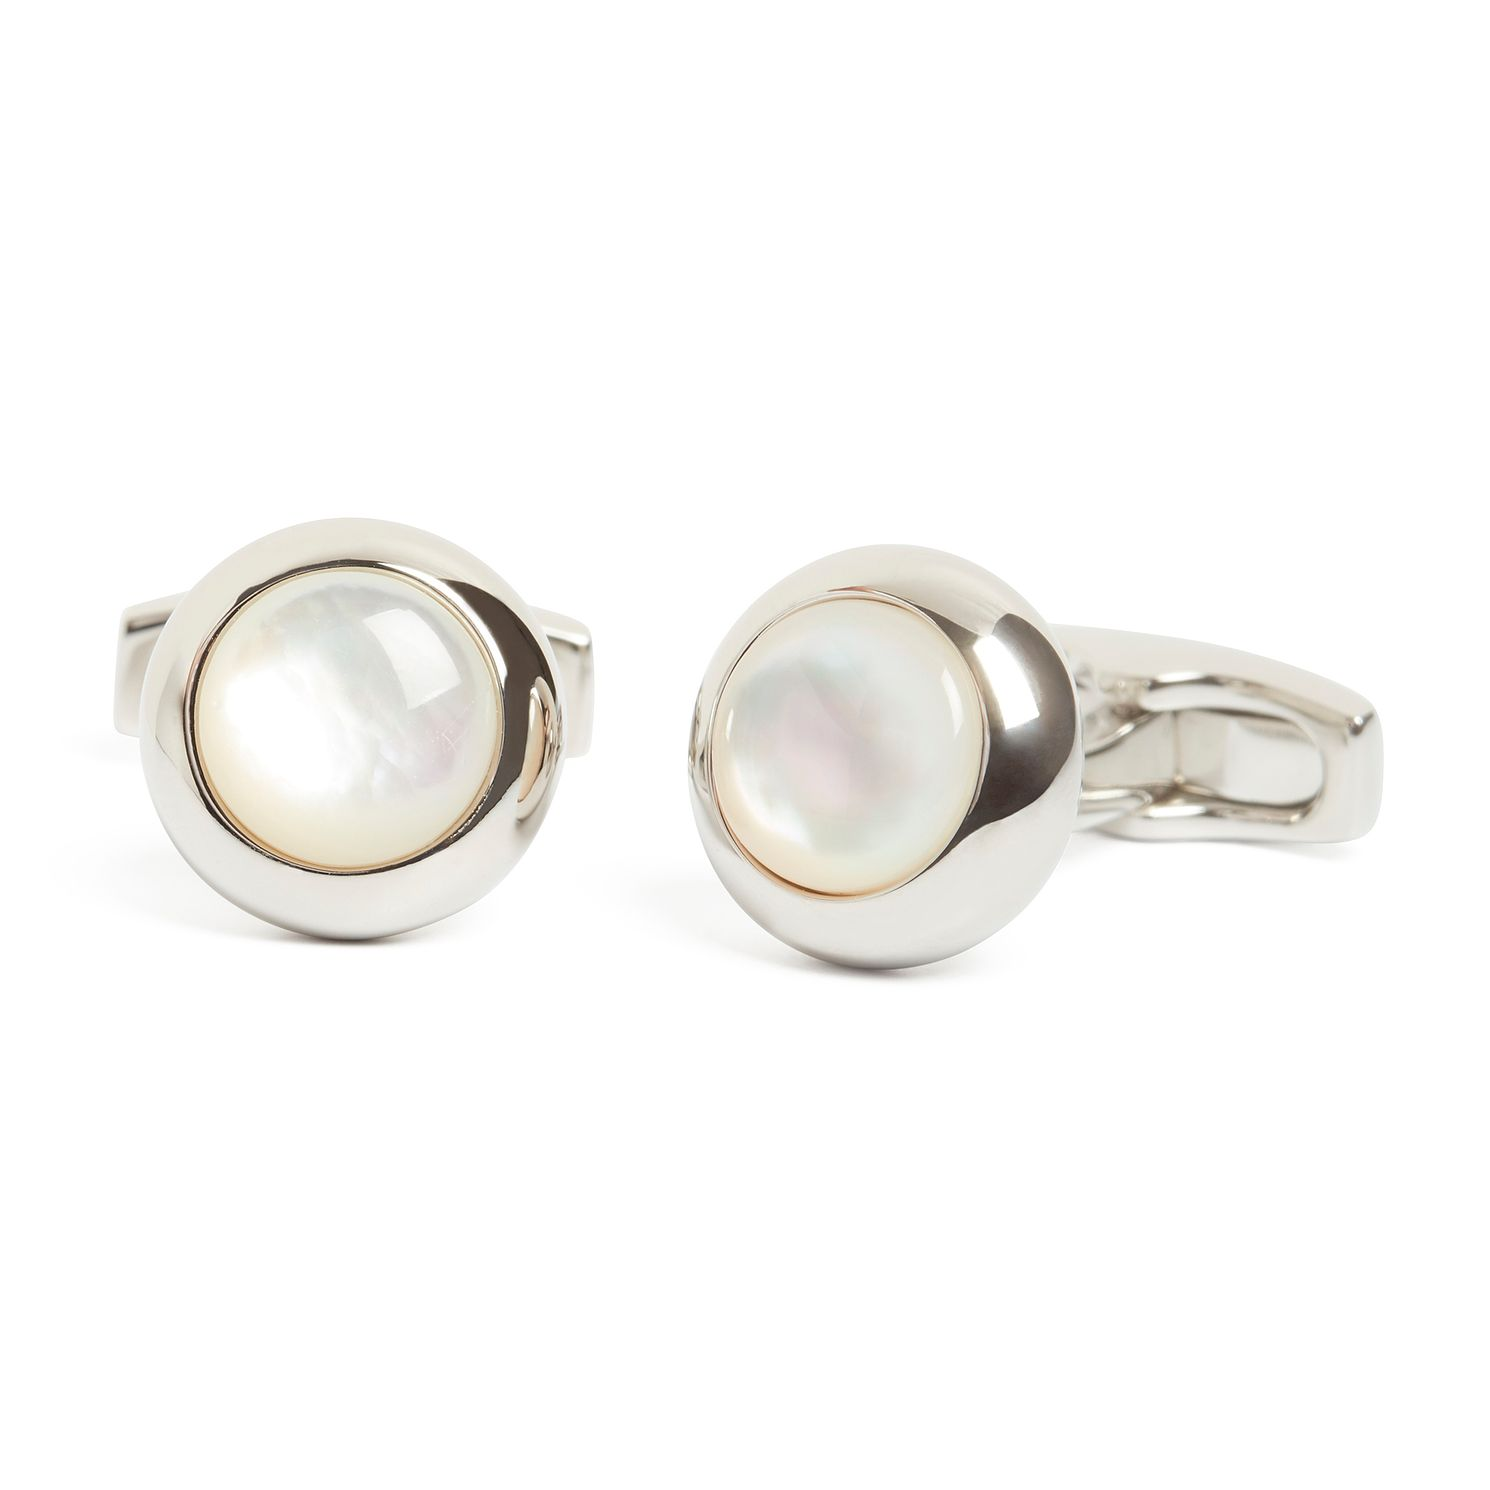 Simon Carter Men's Gatsby Mother of Pearl Cufflinks - Product number 4945778